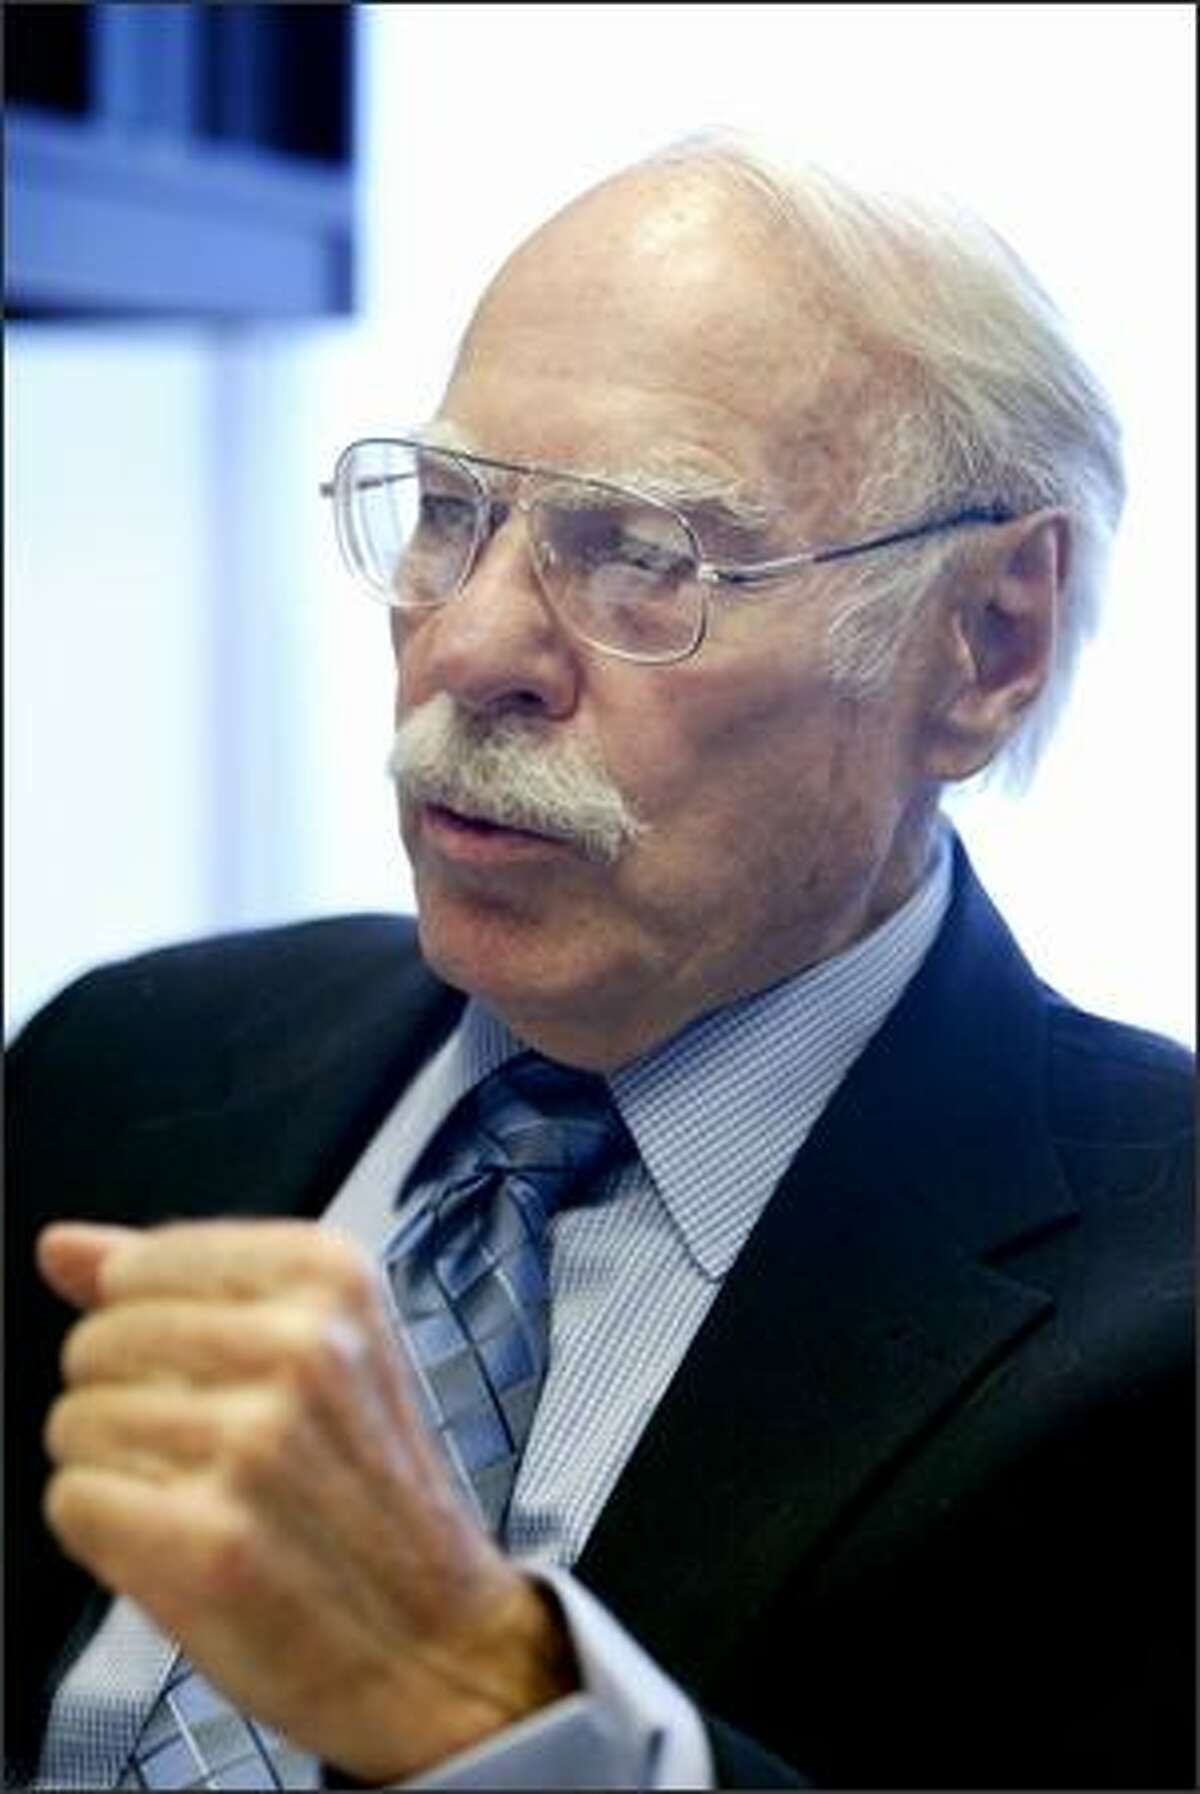 Former CIA spy Edwin Wilson, 78, spent 22 years in prison before he was freed in 2004 after a judge found that government officials hid evidence and lied in order to convict him of treason.